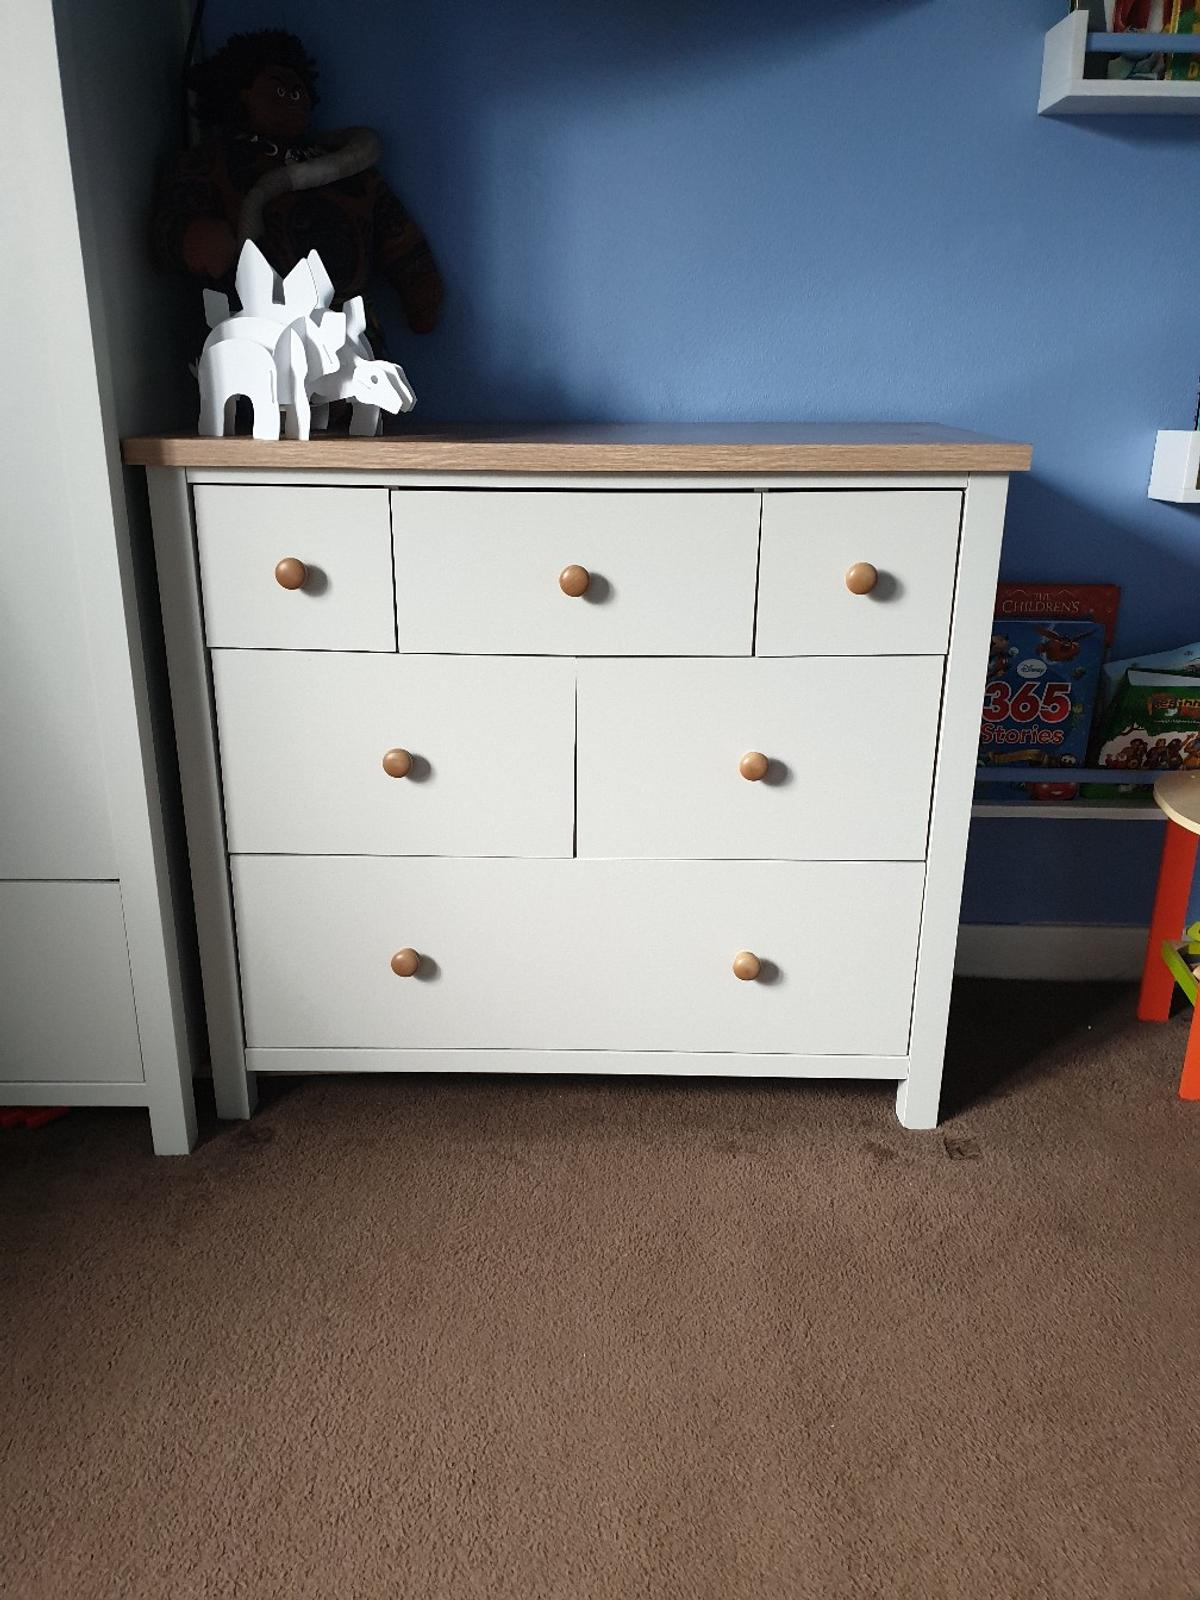 3 piece bedroom set in cream/oak  Wardrobe has 1 shelf 1 hanging rail and a drawer.  Chest of drawers various sizes of drawers (drawers may need realigning)  Single cream bed frame (no mattress) small chip and stain as shown in pictures.  All in good condition  From pet and smoke free home  Collection from Heywood